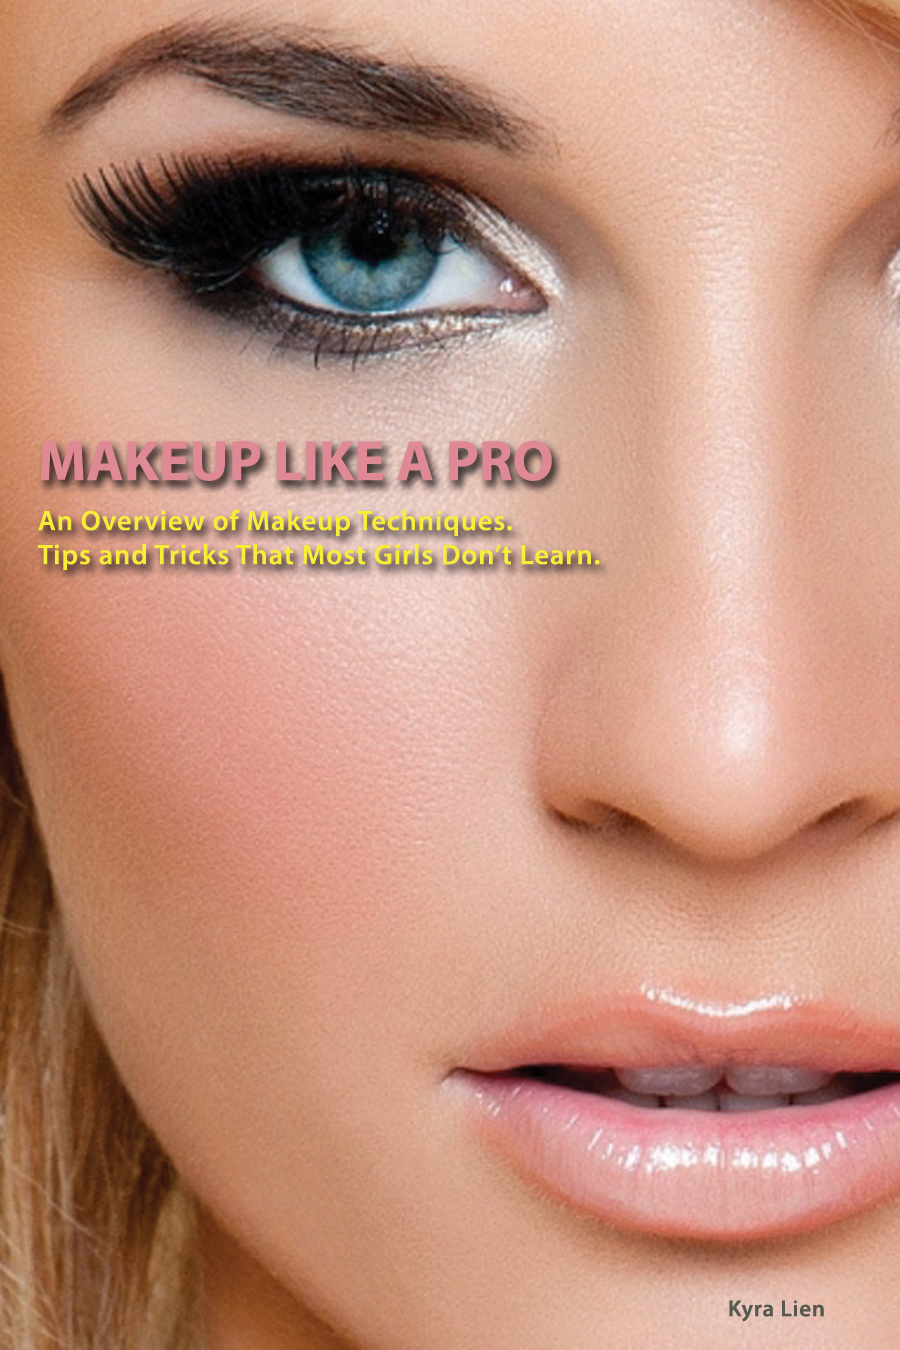 How To Apply Makeup Like A Pro. Tips and Tricks That Every Girl Wishes She Knew!